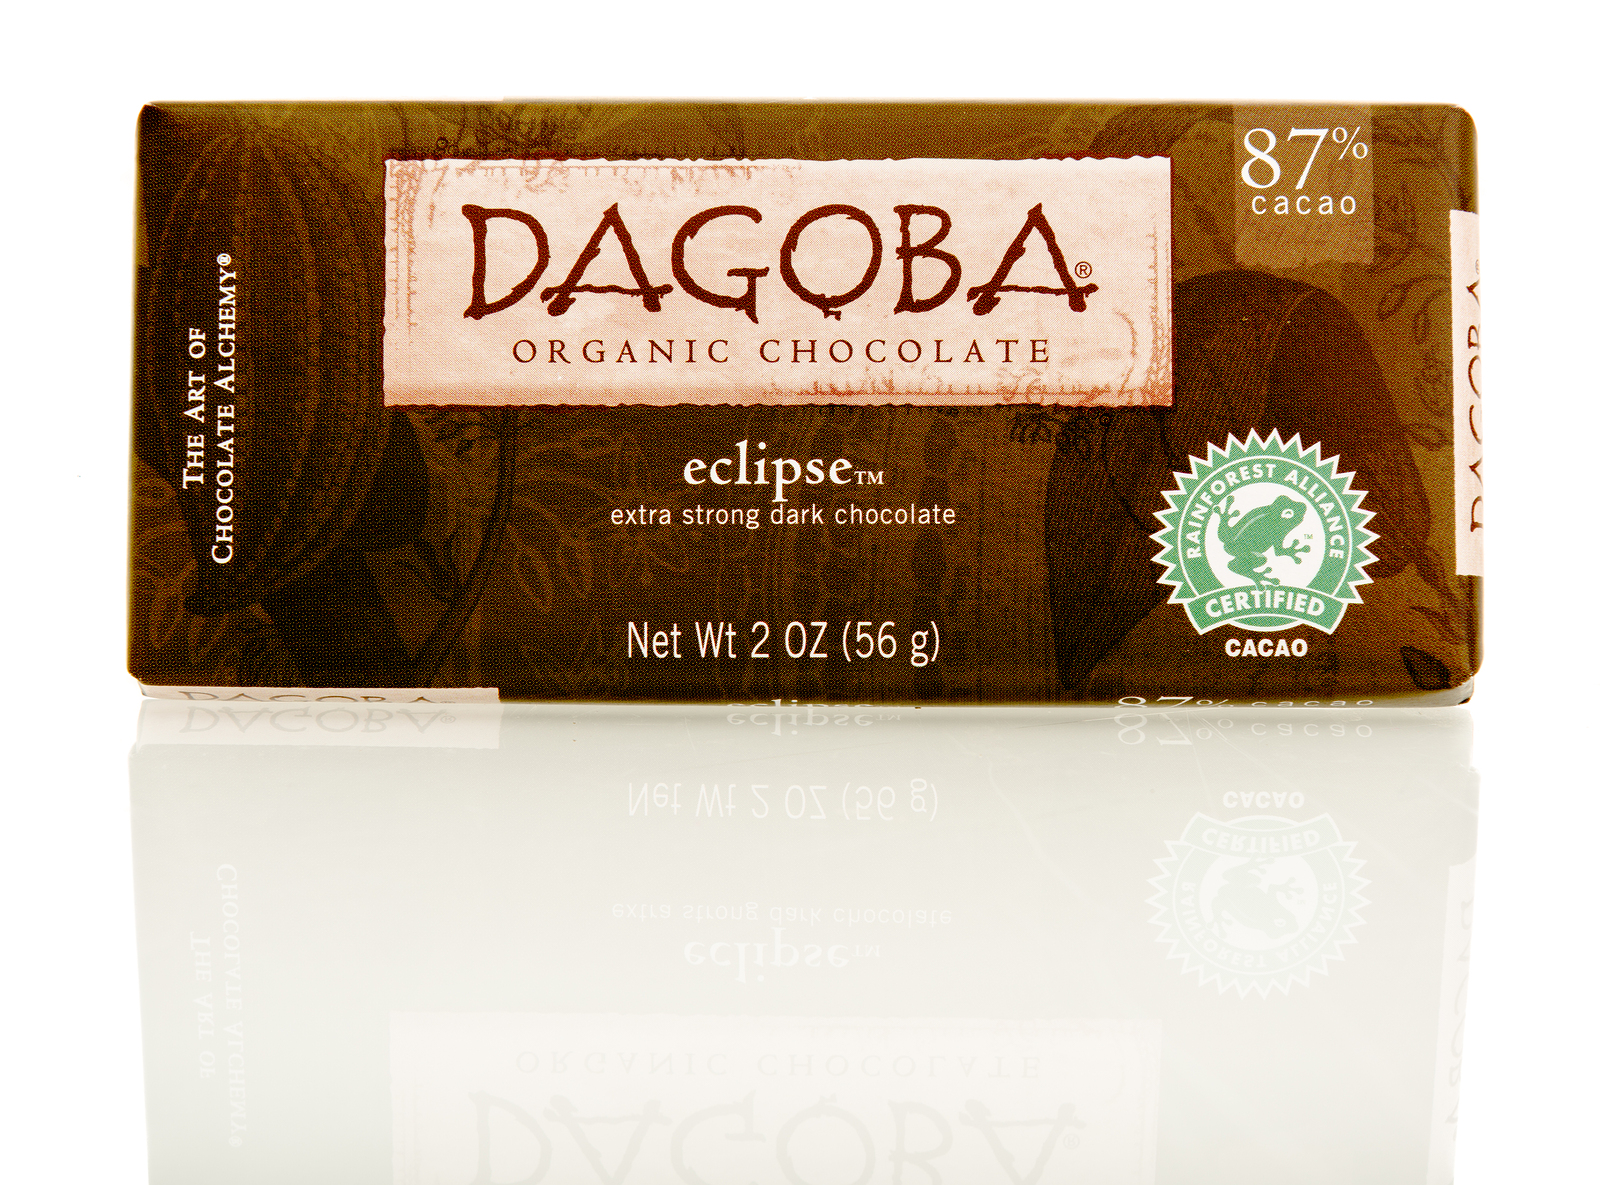 Dagoba Eclipse 87% Extra Strong Dark Chocolate Bar in Wrapper.